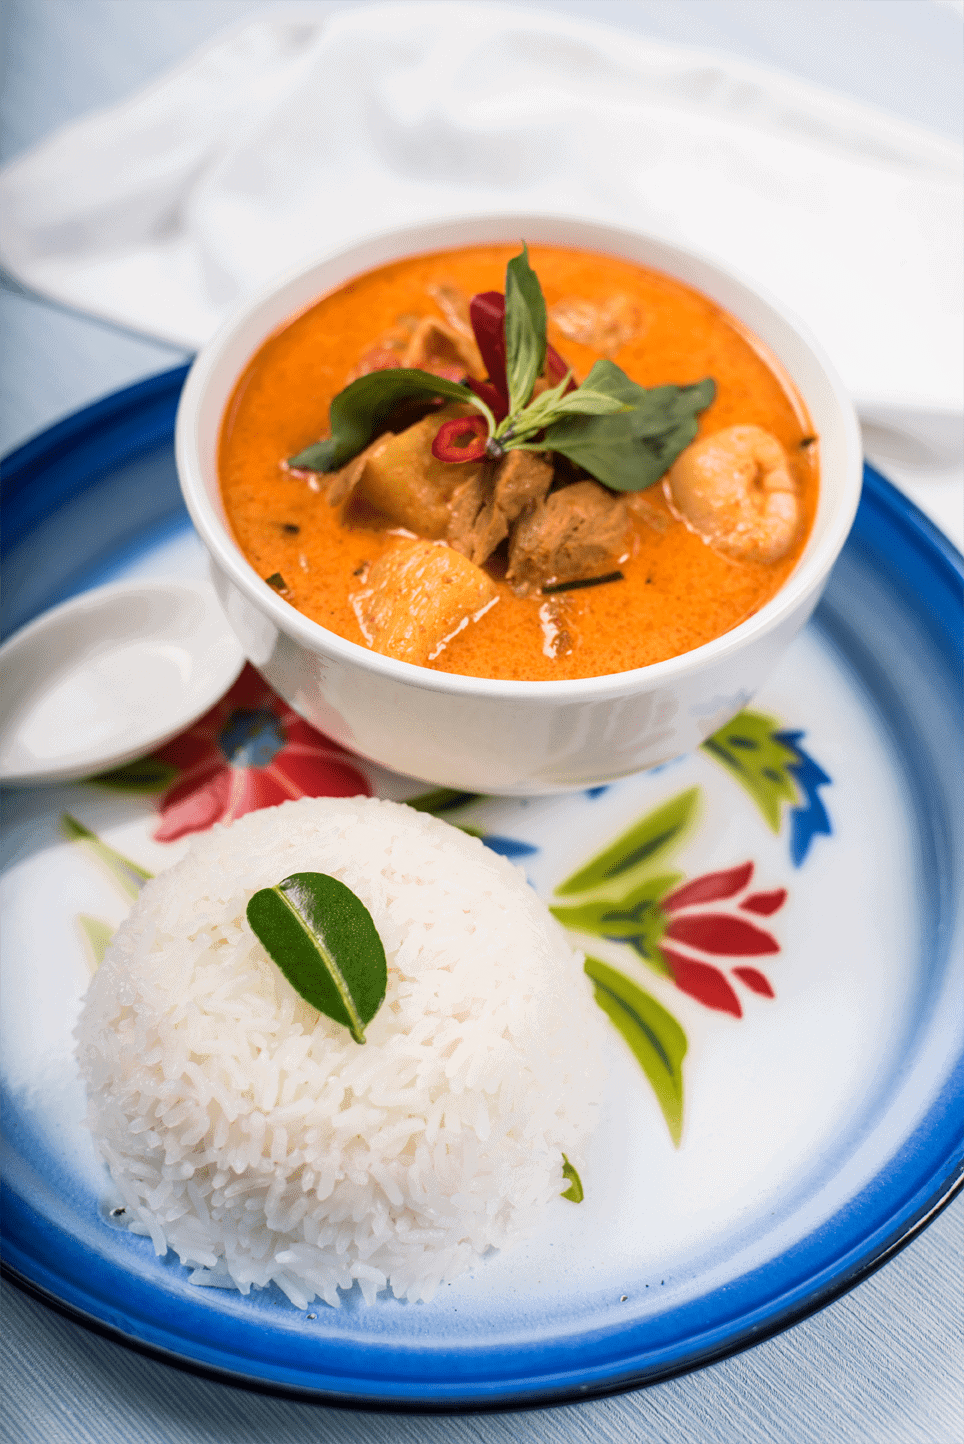 Roast 'Duck' Curry - Gaeng Phed 'Ped' Yaang 1